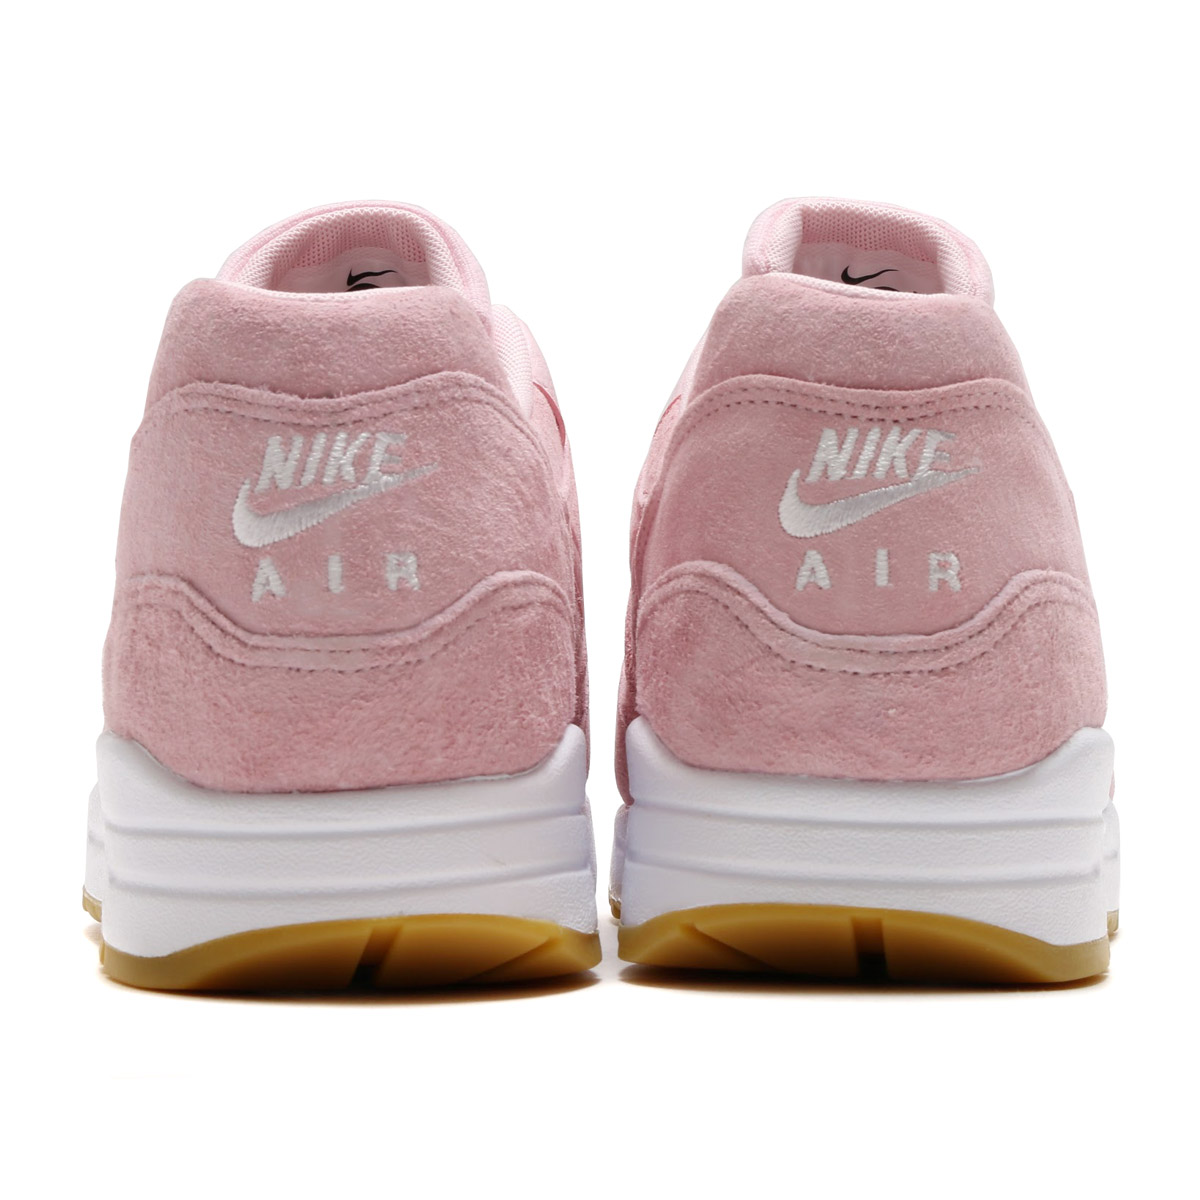 nike air max 1 prism pink white nz